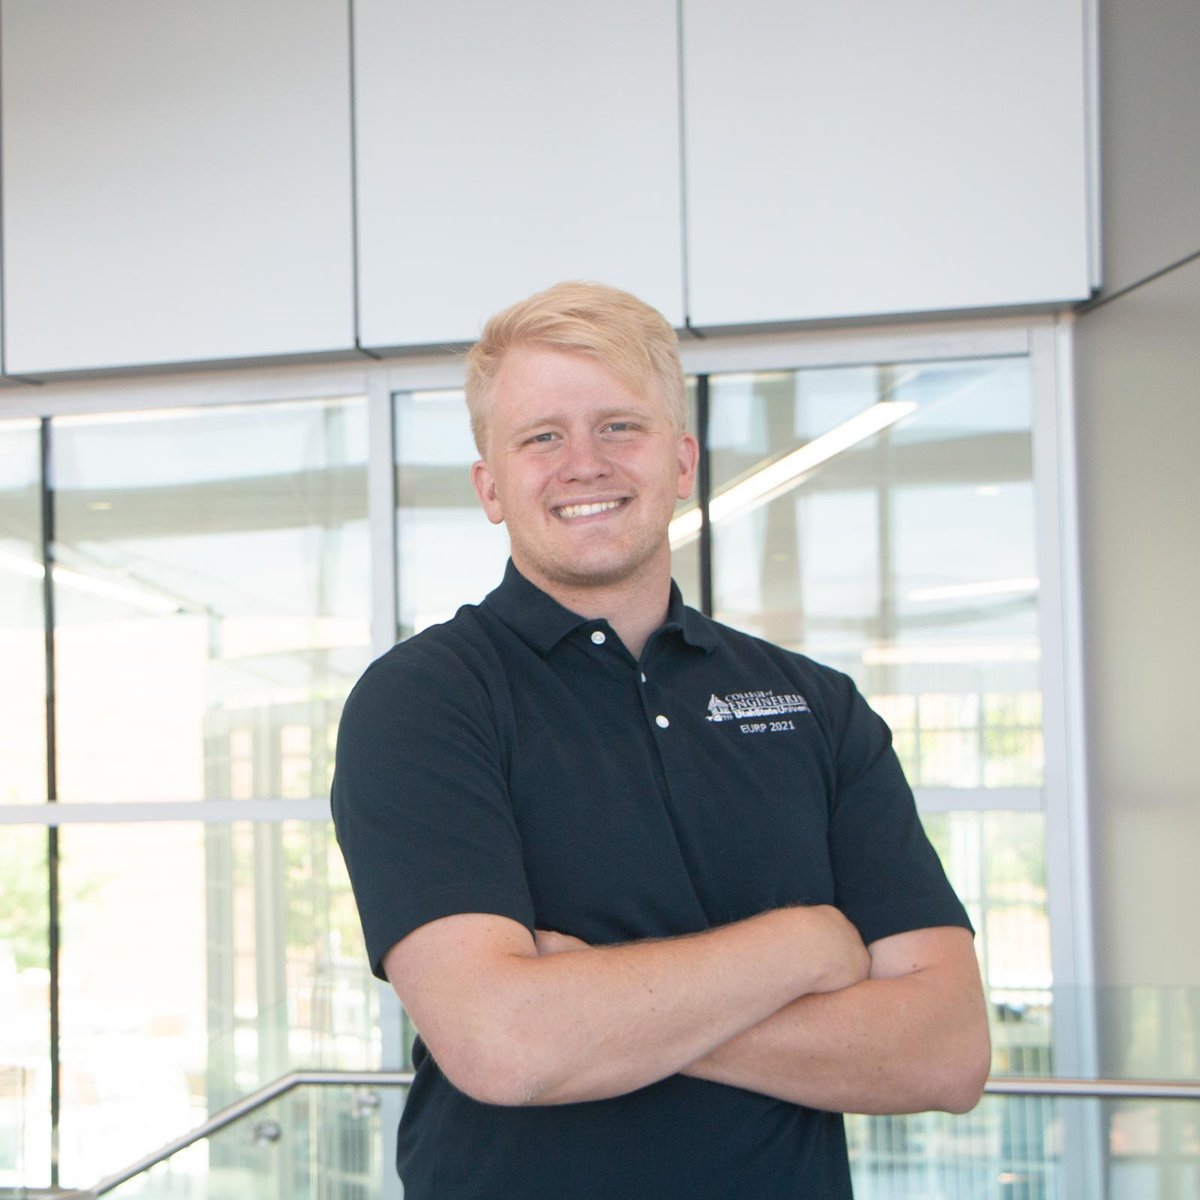 Meet Sam Christensen, an electrical engineering major from San Diego. Sam likes tinkering with circuits and doing drone research in the Autonomy Lab, and he plans to put his tech knowledge to use as a patent lawyer. https://t.co/hAnv36S3no https://t.co/92AYPfA6Ta